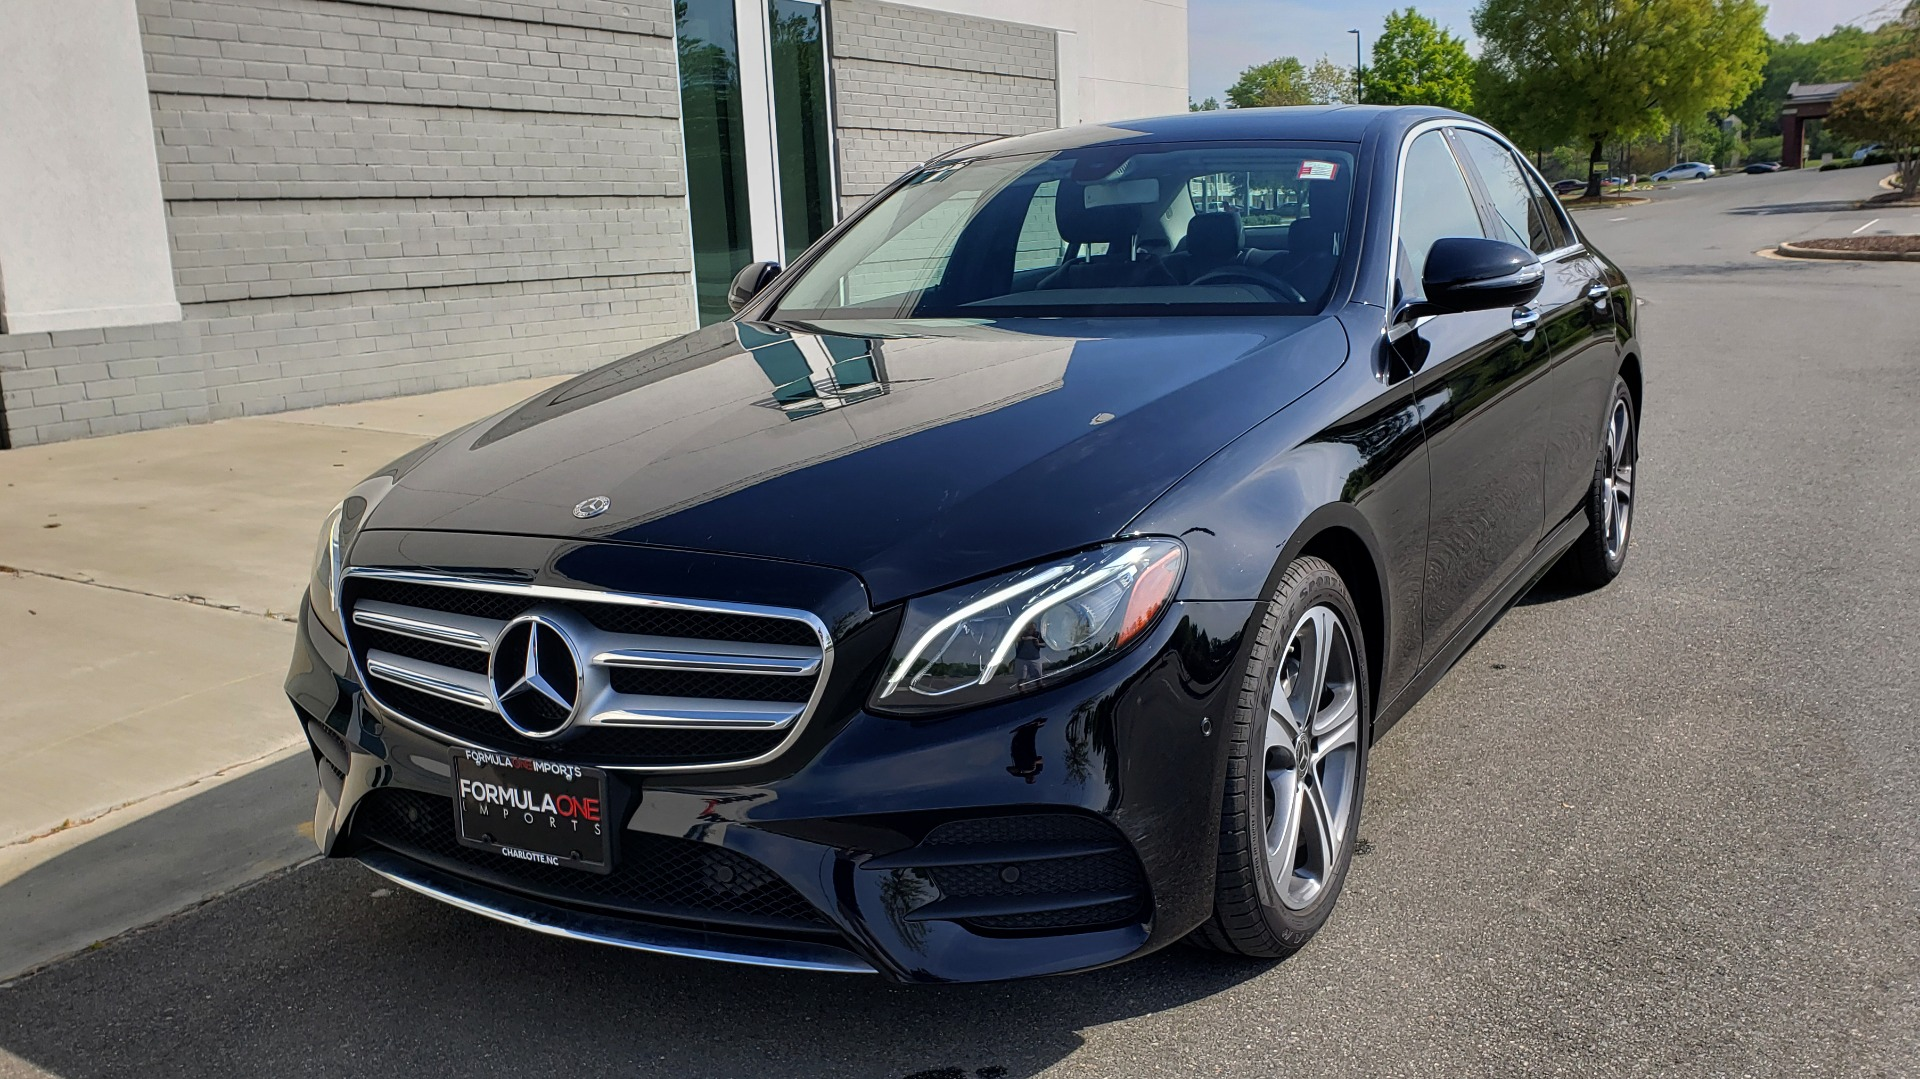 Used 2018 Mercedes-Benz E-CLASS E 300 PREMIUM / 4MATIC / NAV / SUNROOF / H/K SND / REARVIEW for sale $34,195 at Formula Imports in Charlotte NC 28227 2